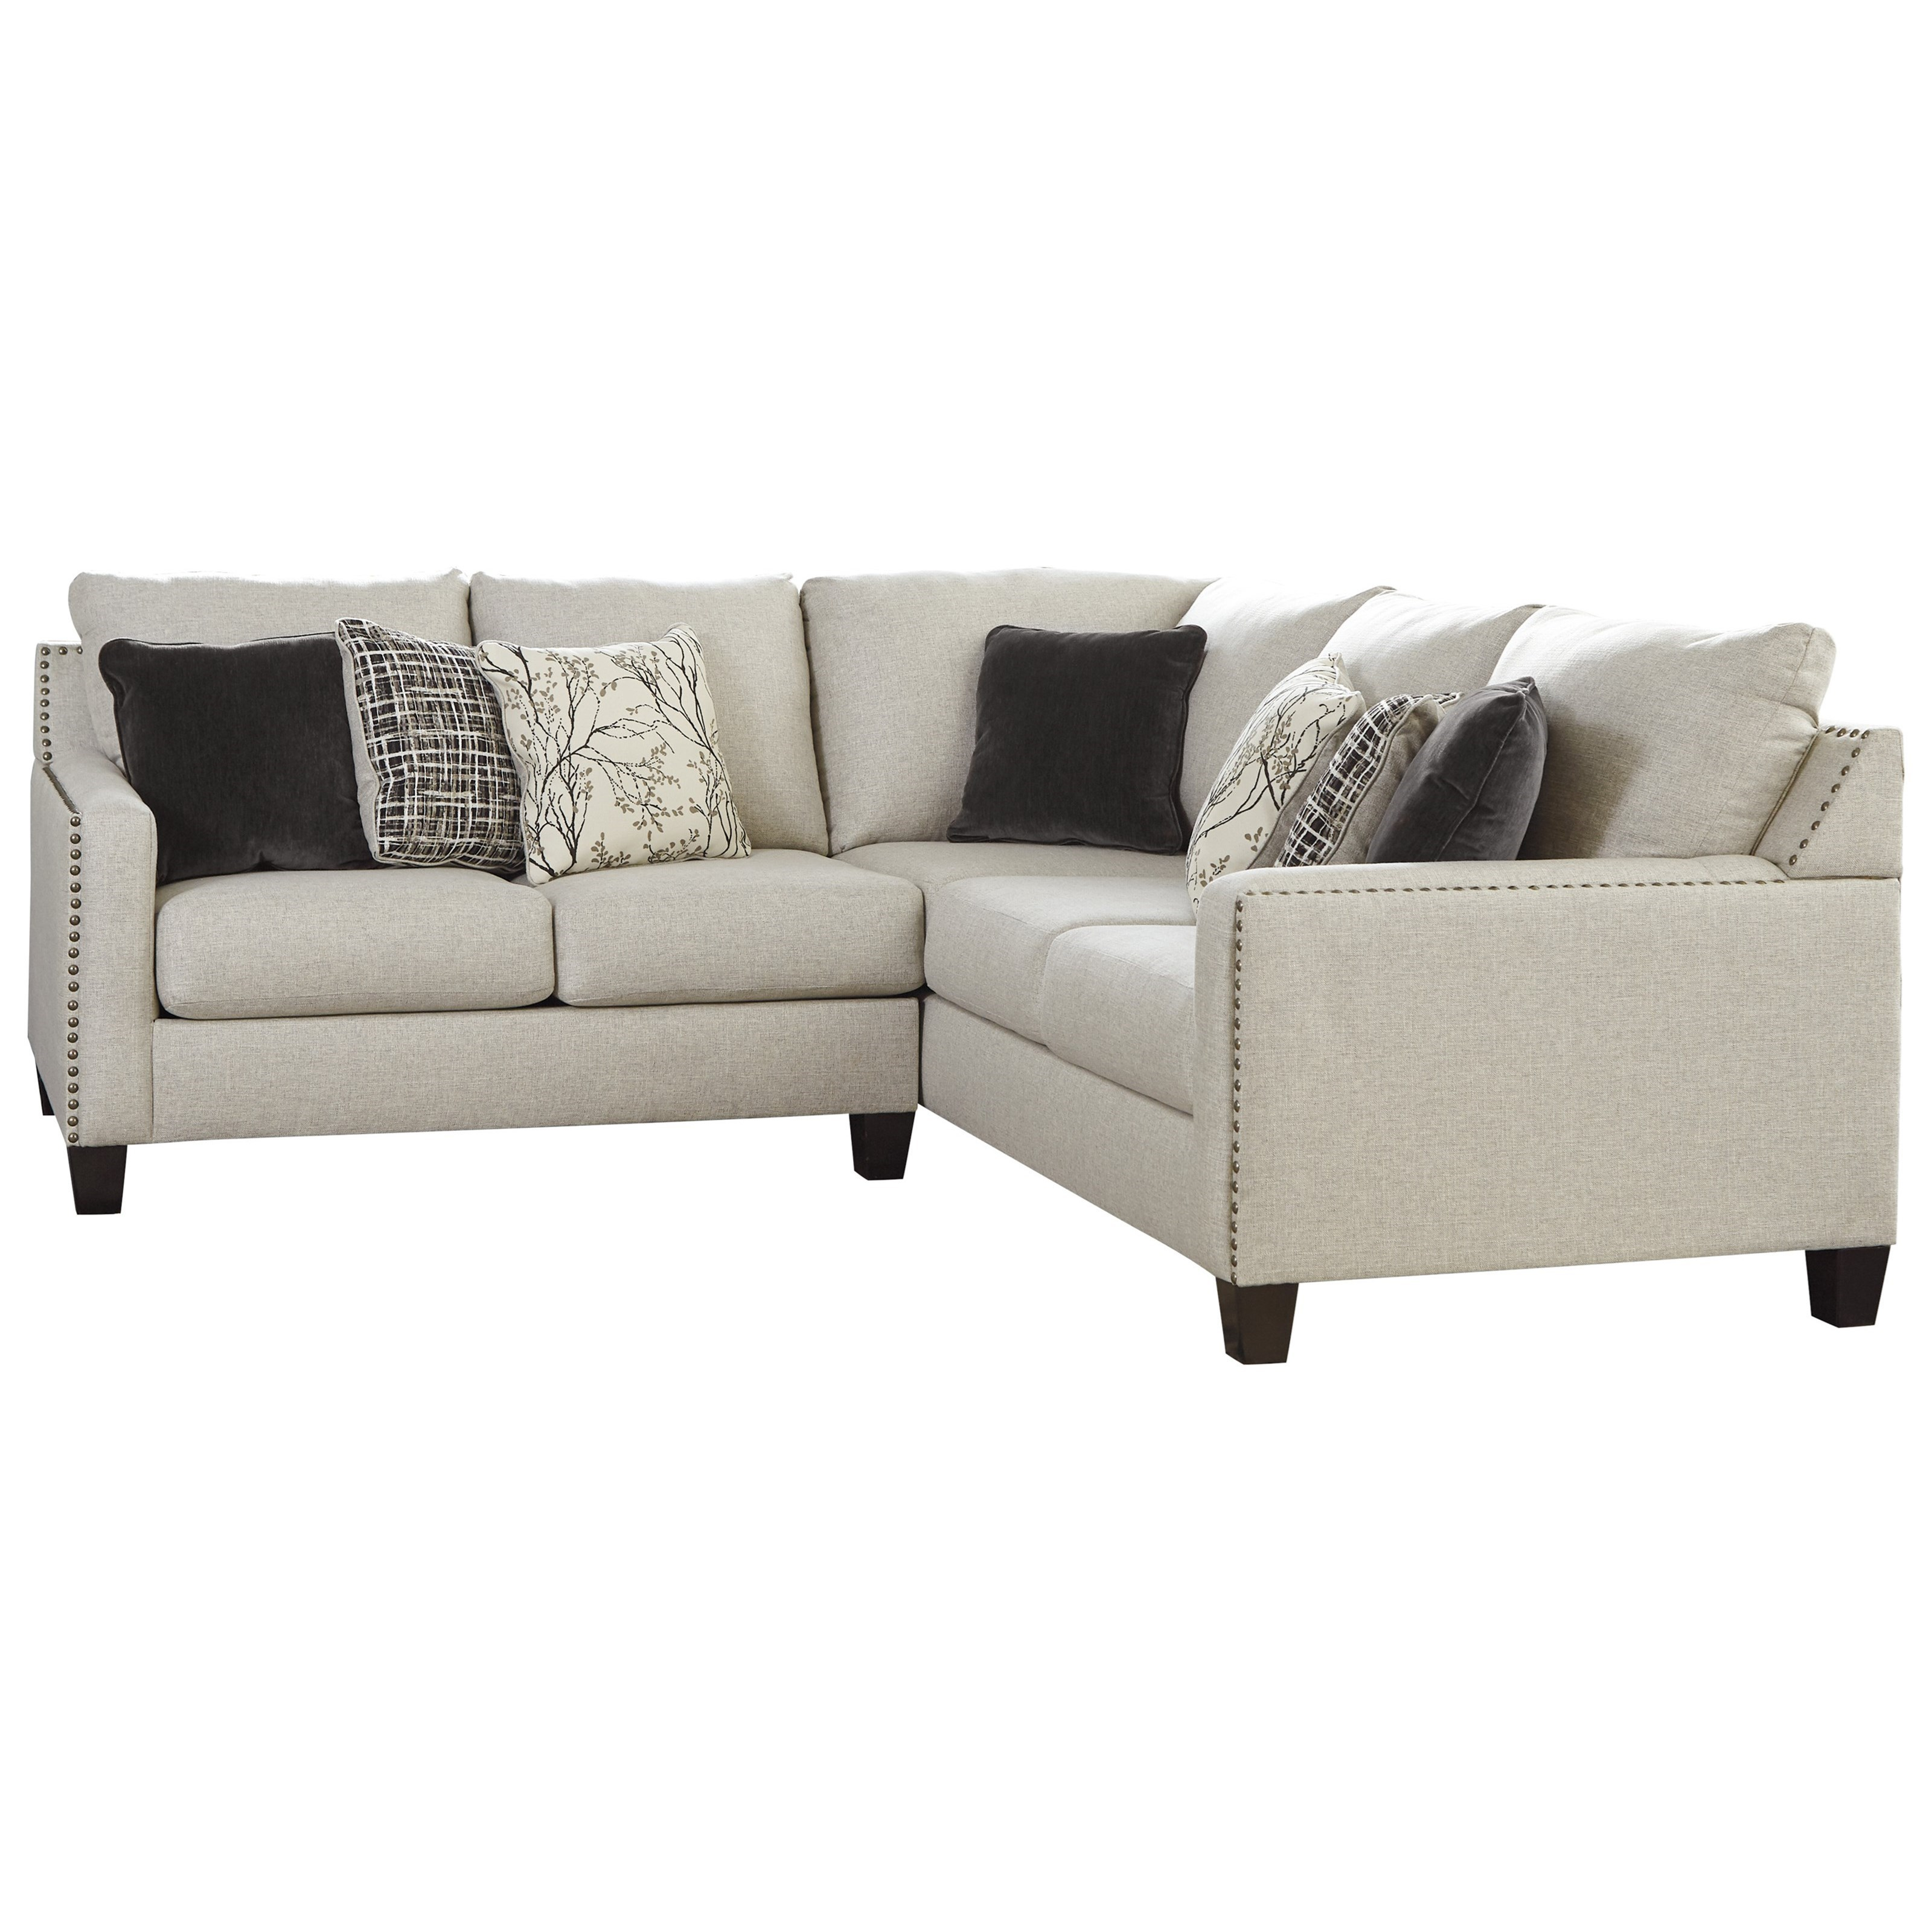 Hallenberg 2-Piece Sectional by Signature at Walker's Furniture